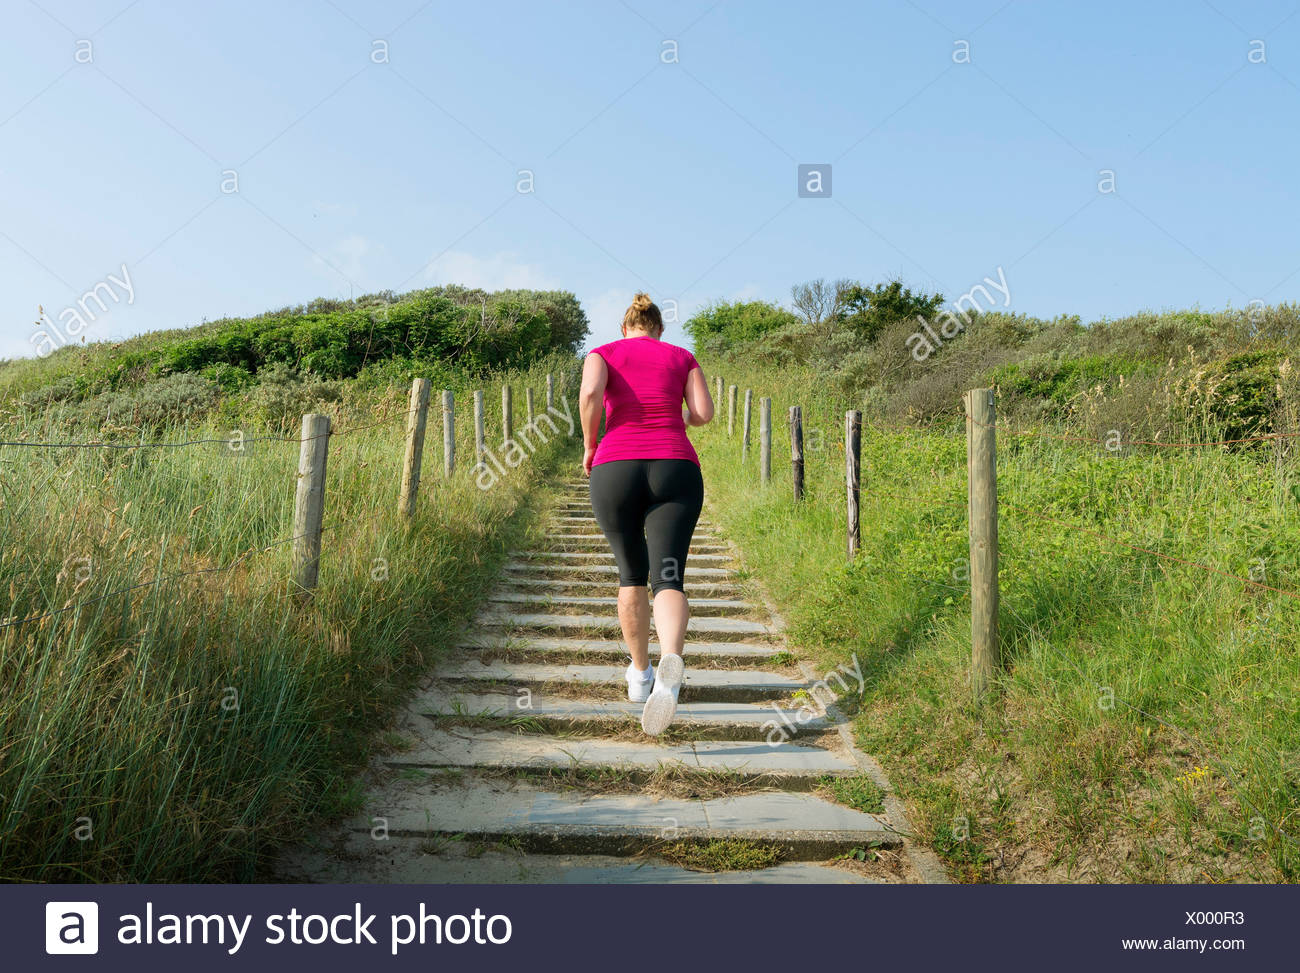 Rear view of woman running up stairs - Stock Image